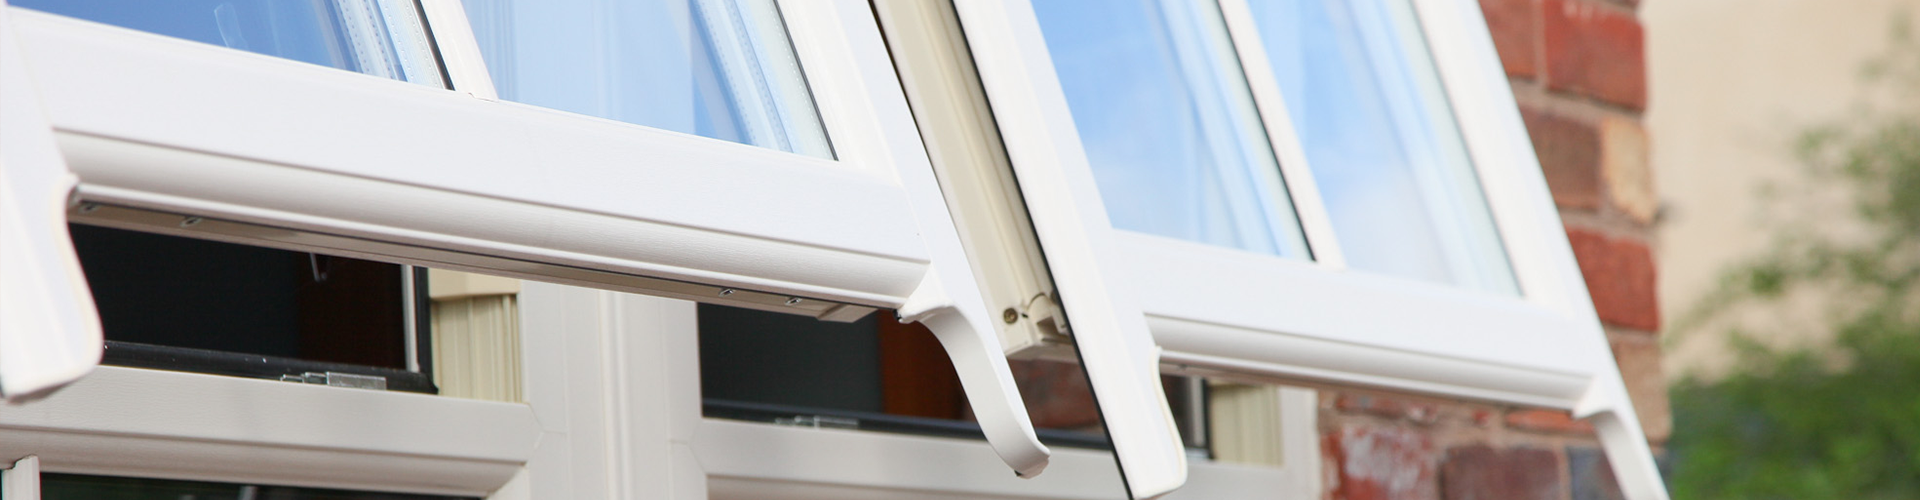 double glazing windows installer